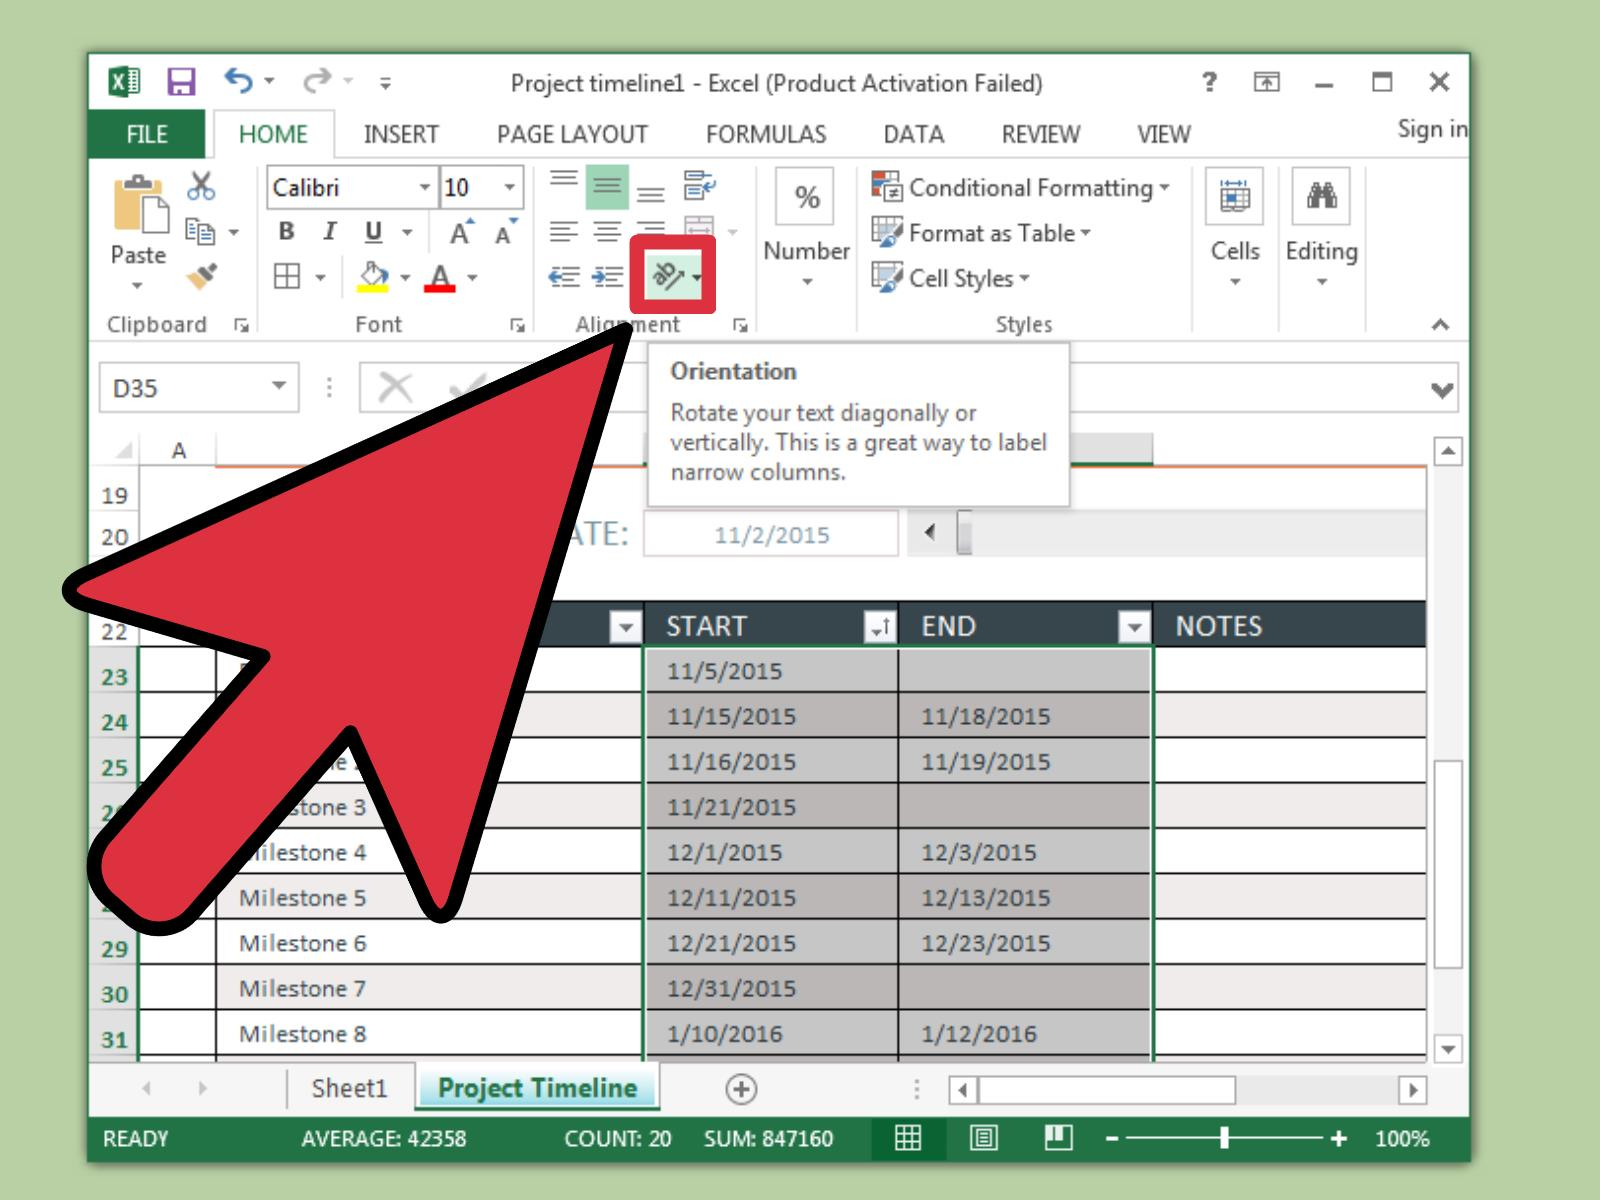 ow to unlock excel spreadsheet for editing